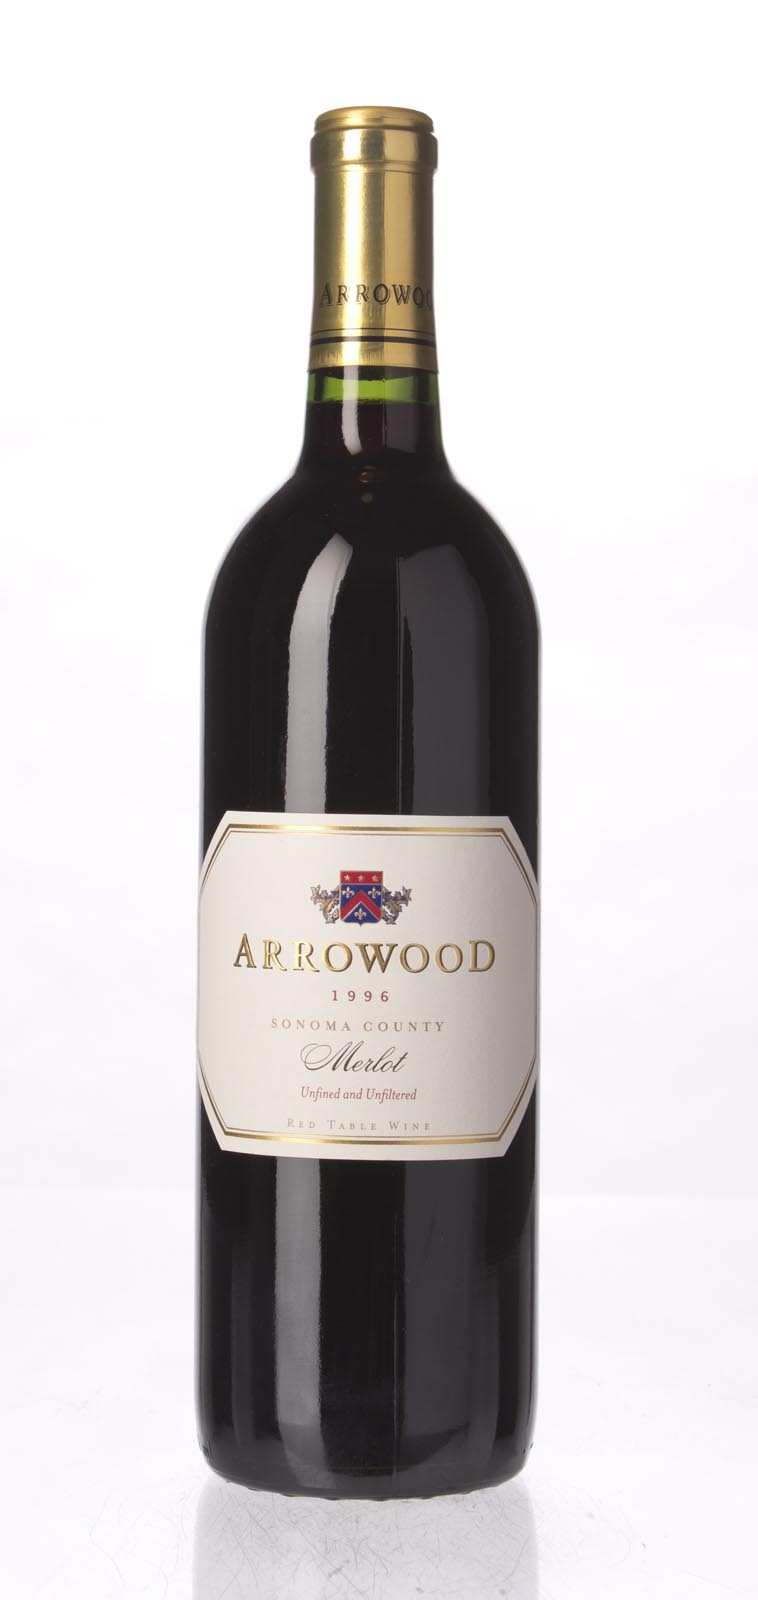 Arrowood Merlot Sonoma County 1996, 750mL () from The BPW - Merchants of rare and fine wines.